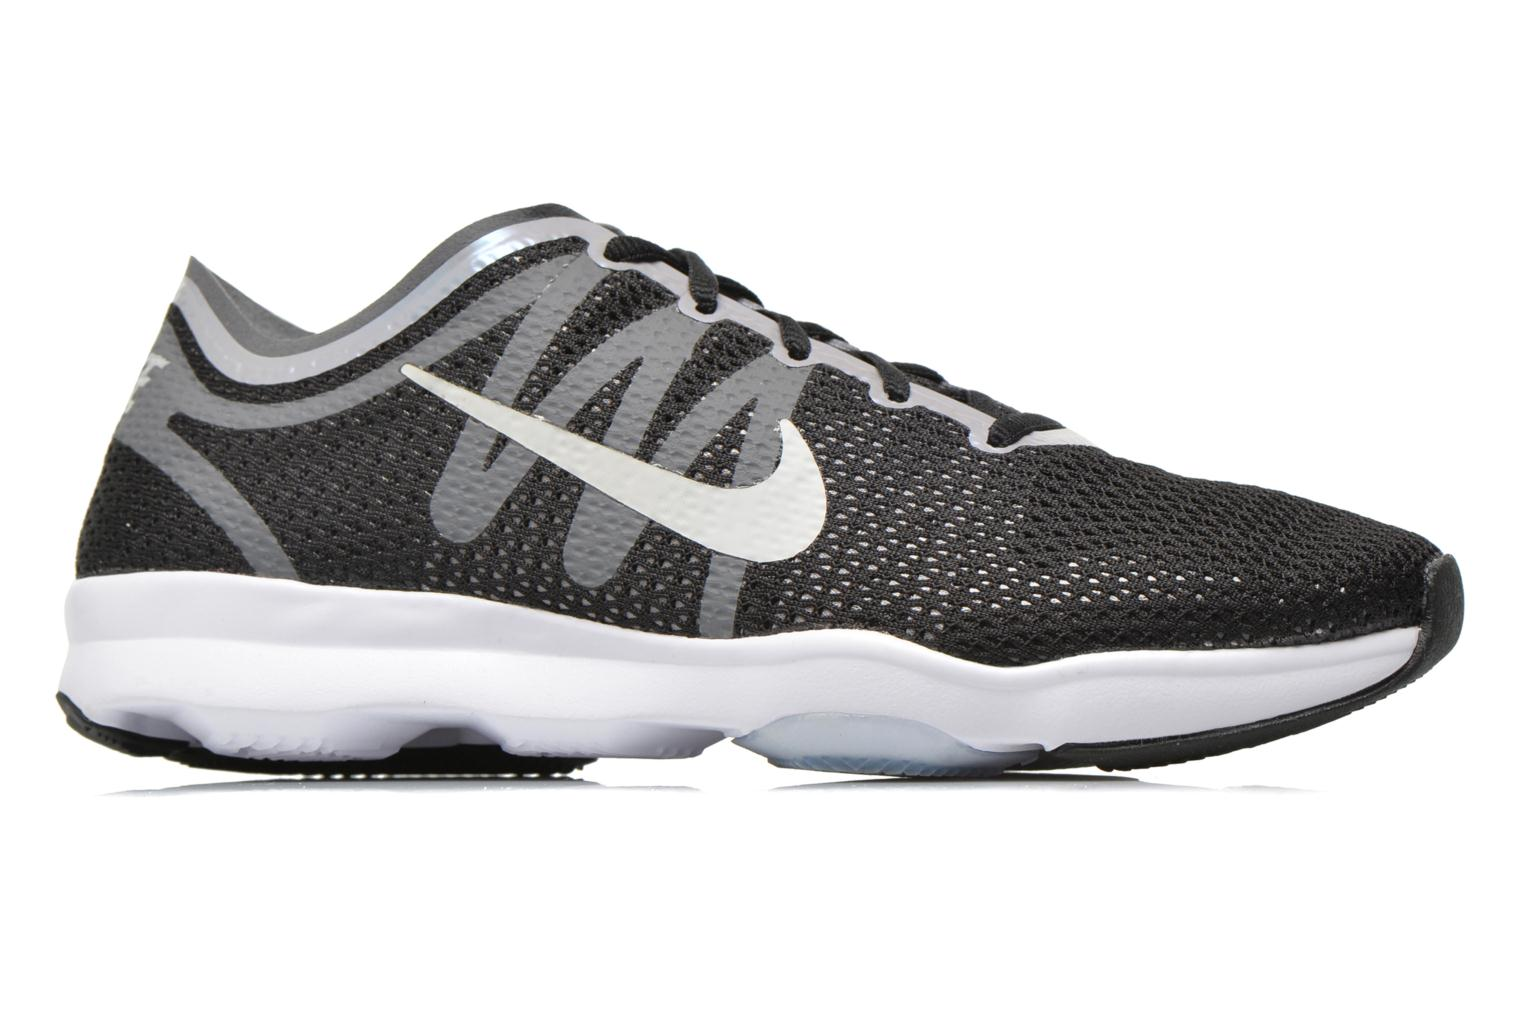 Wmns Nike Air Zoom Fit 2 Black/White-Dark Grey-Wlf Grey